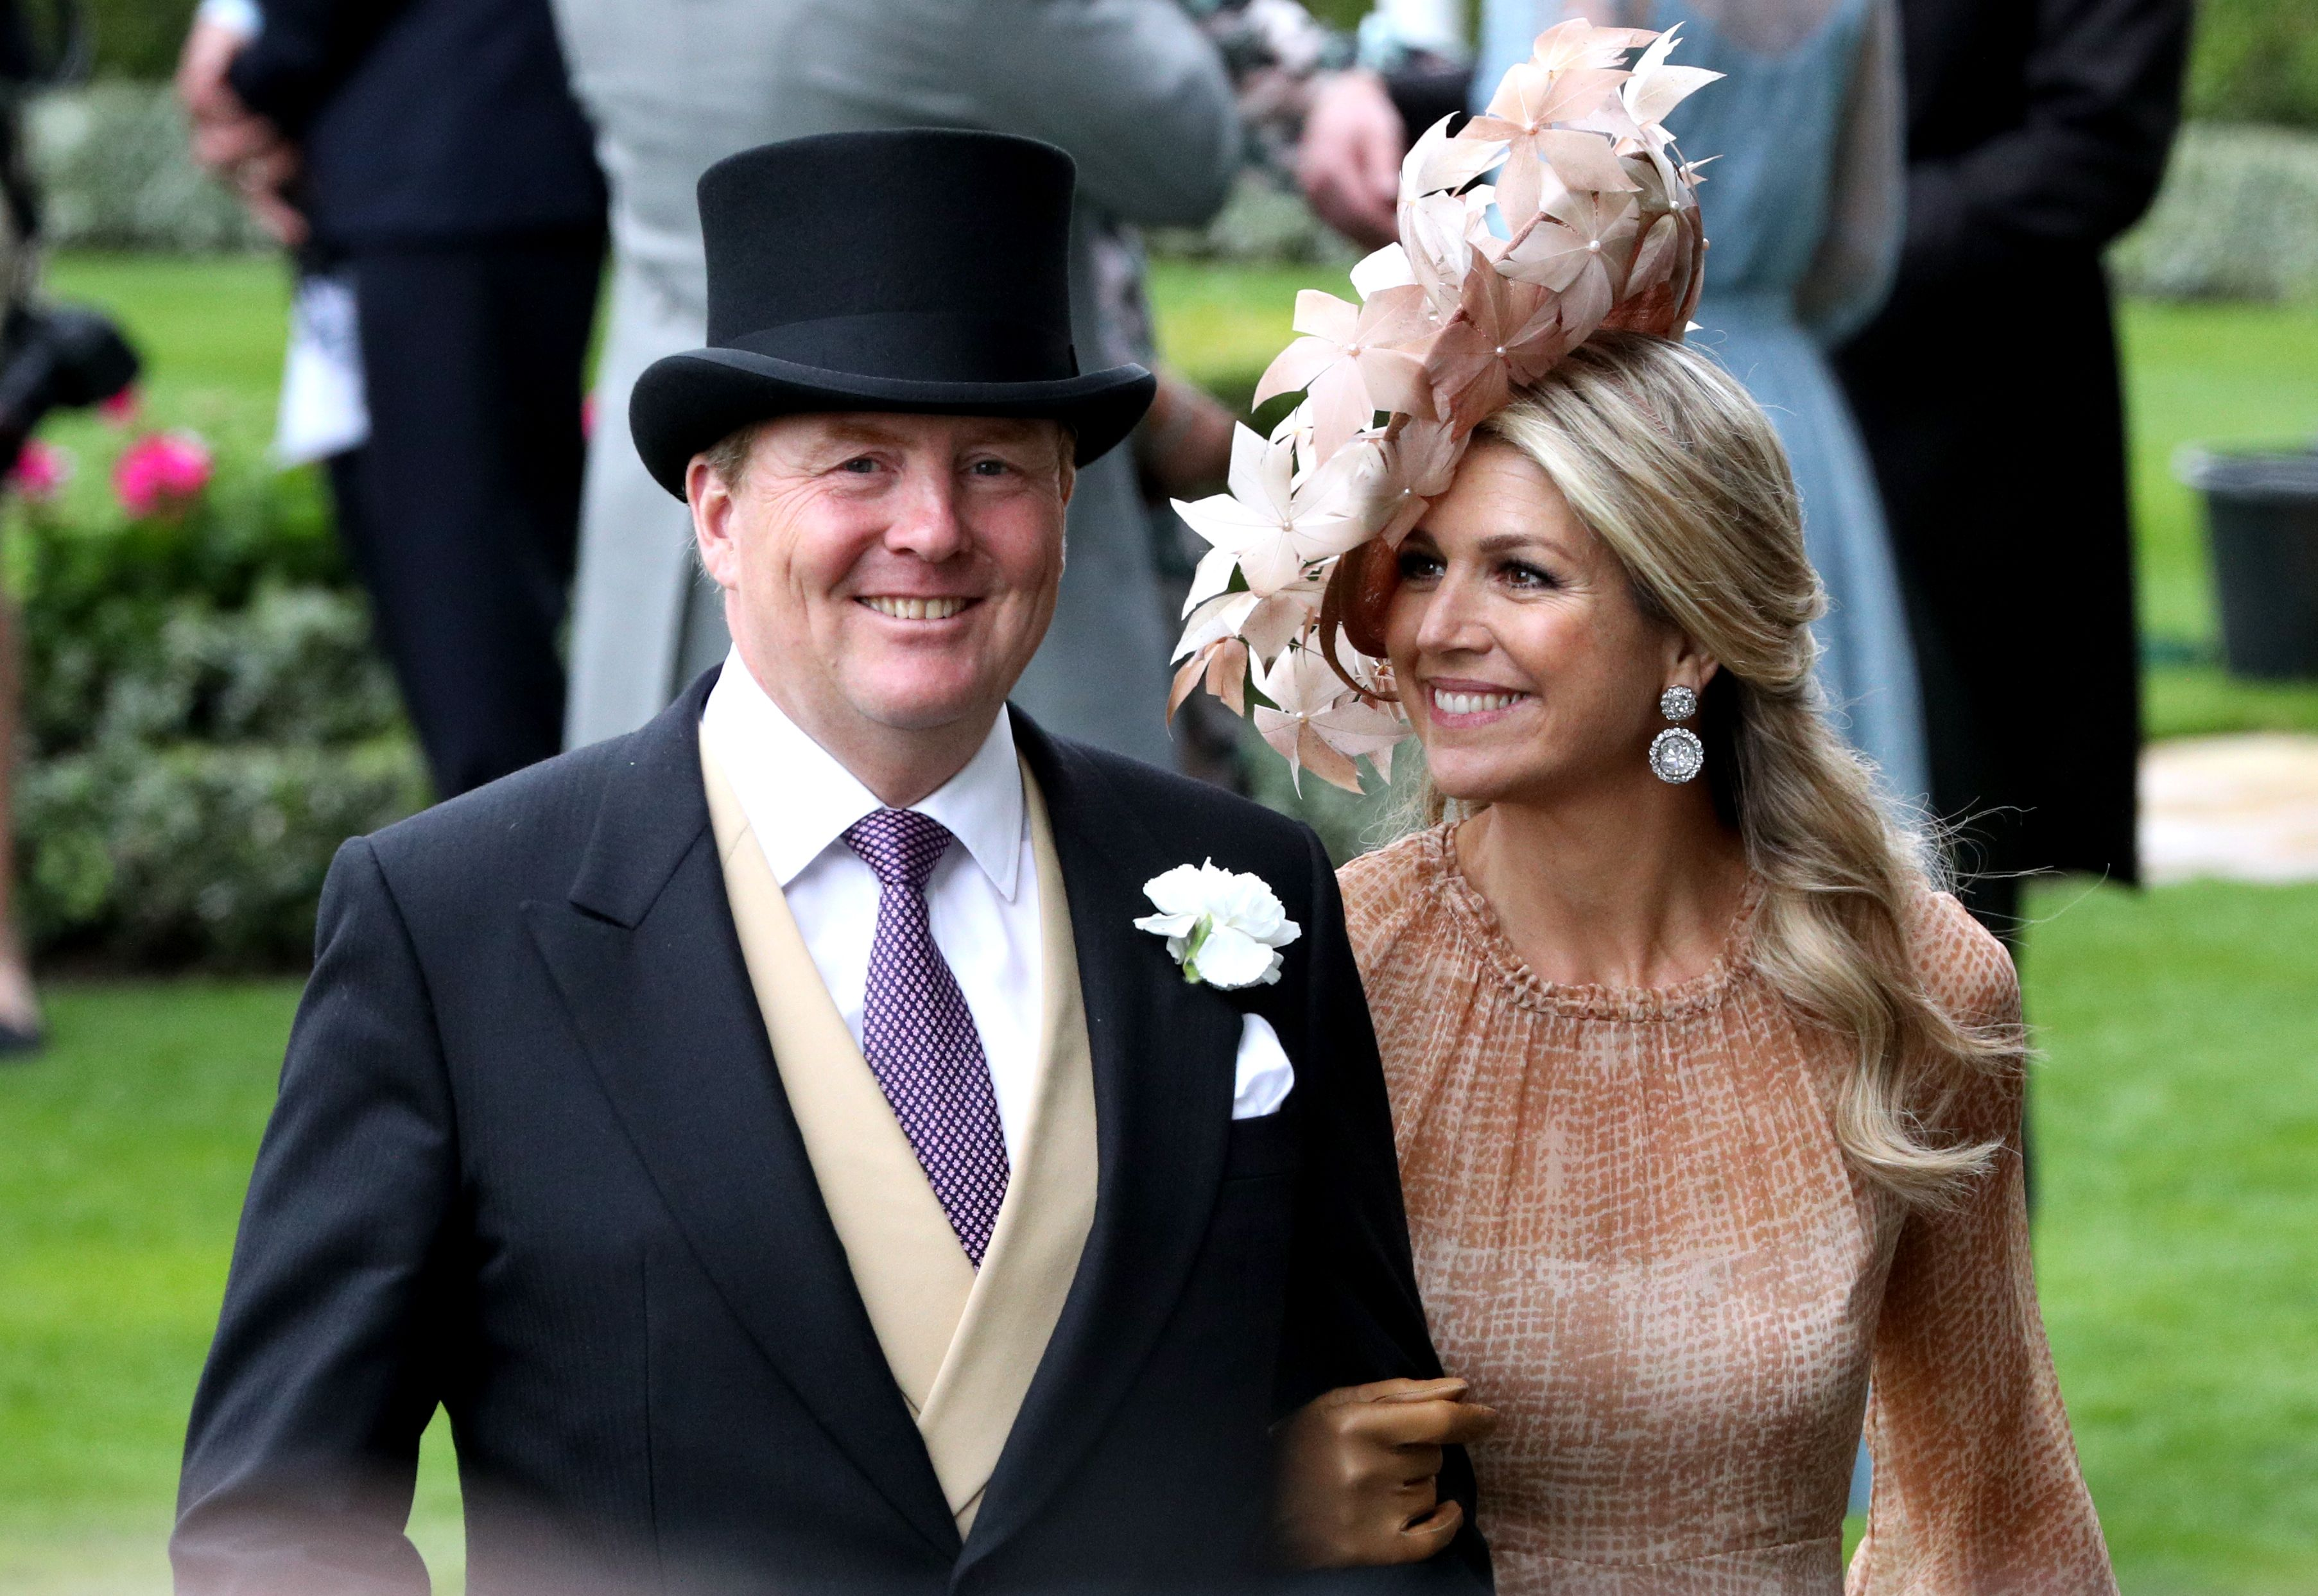 Queen Maxima of the Netherlands Is Killing the Hat Game at the Royal Ascot